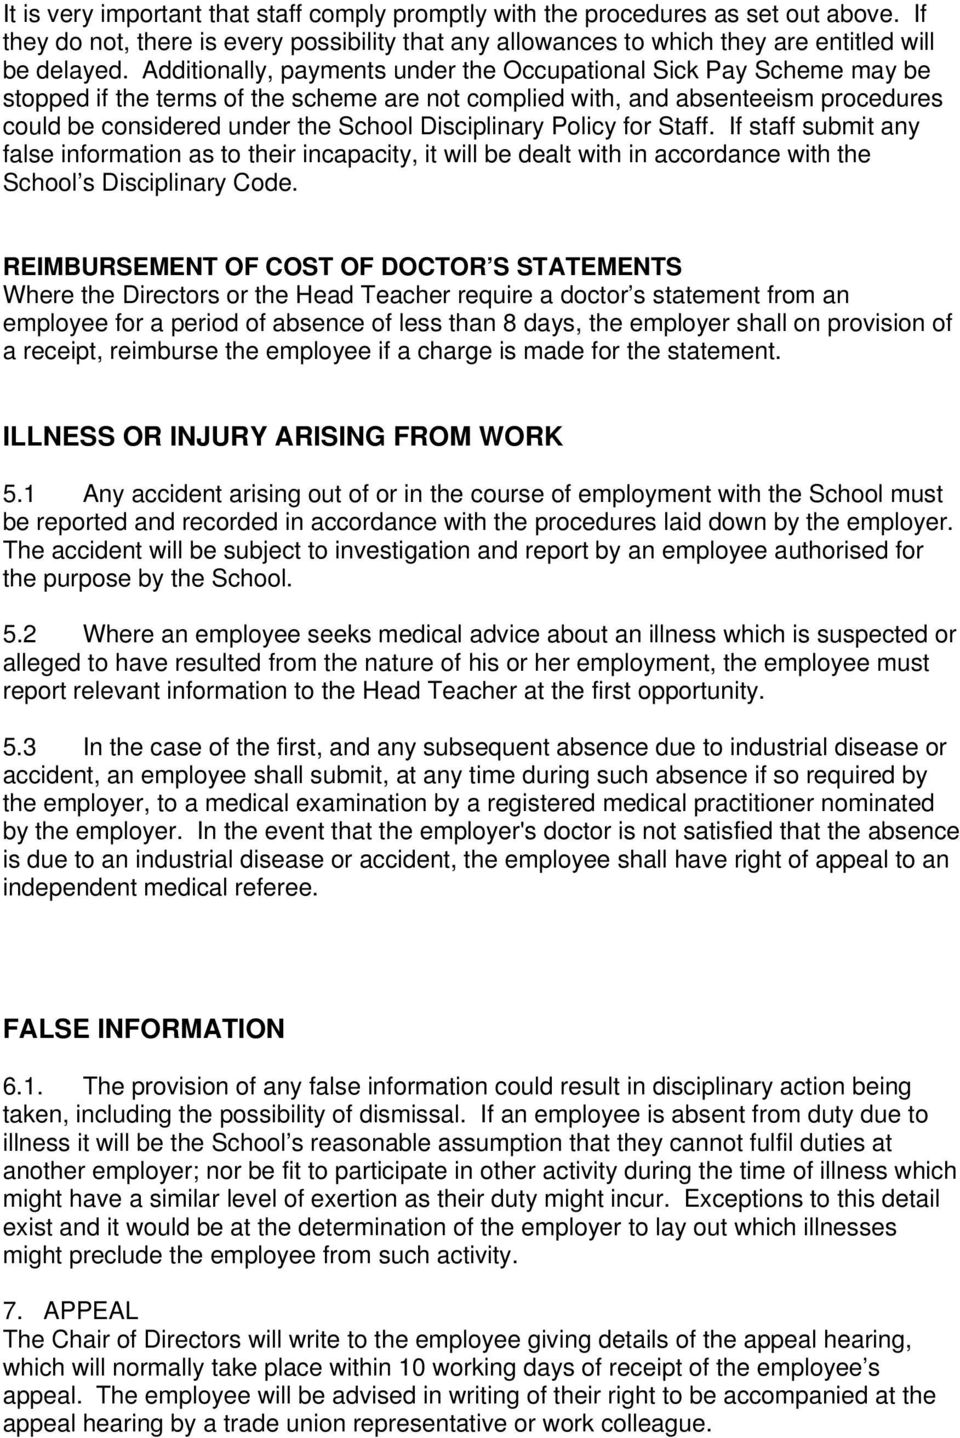 Disciplinary Policy for Staff. If staff submit any false information as to their incapacity, it will be dealt with in accordance with the School s Disciplinary Code.